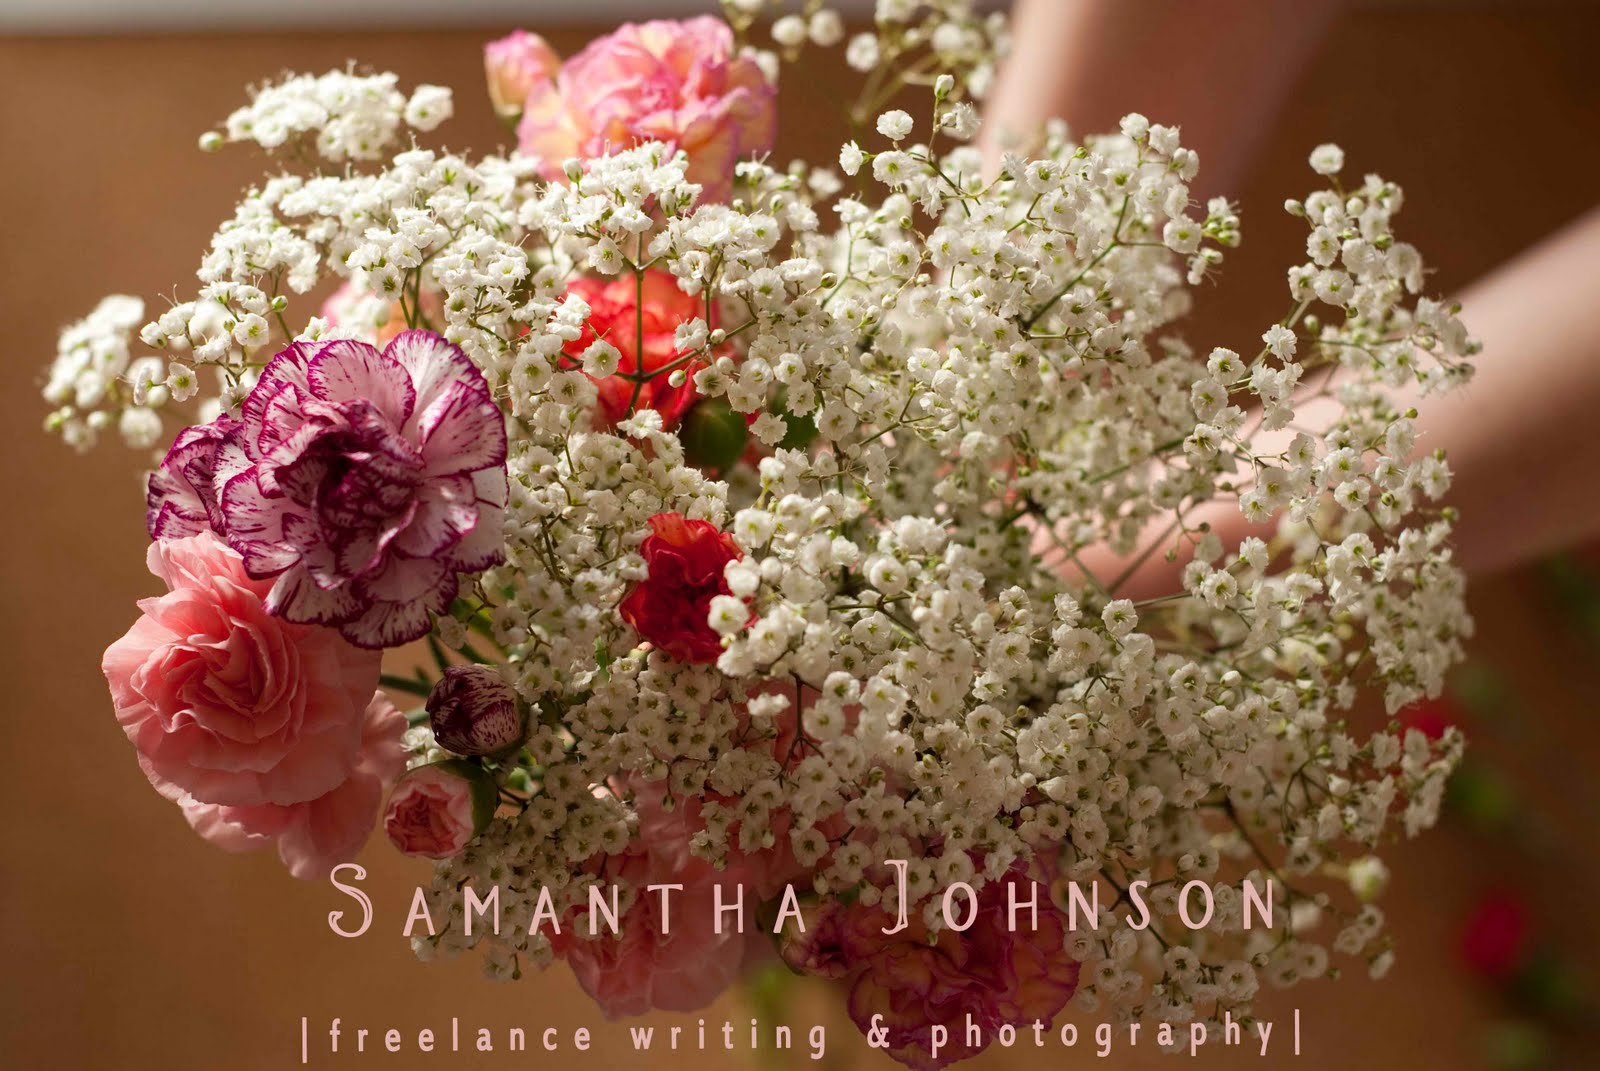 Samantha Johnson, Freelance Writing, Editing, & Photography